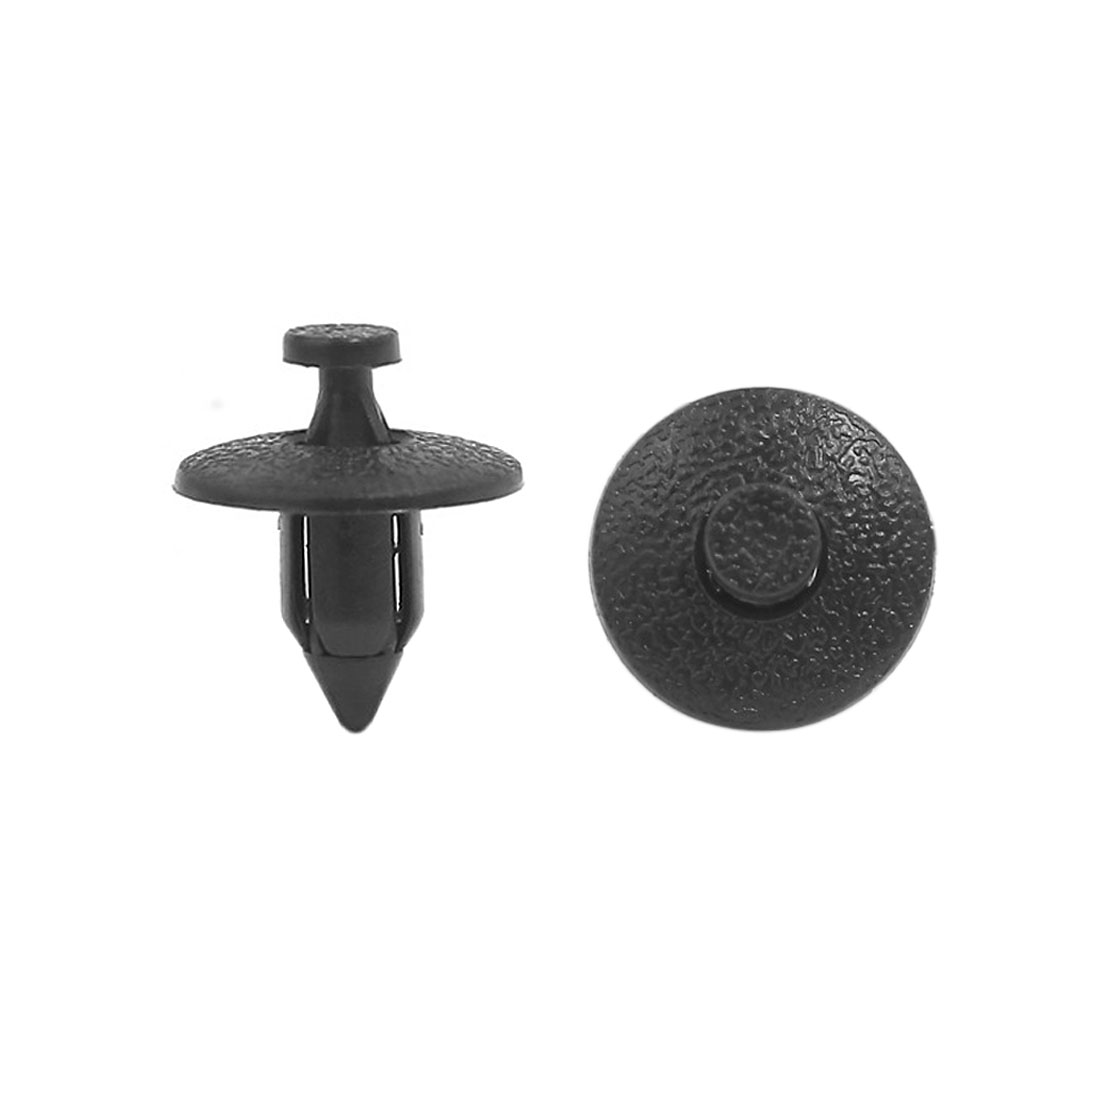 100 Pcs Plastic Automobile Car Push Fastener Rivets Fender Clips Black 8mm